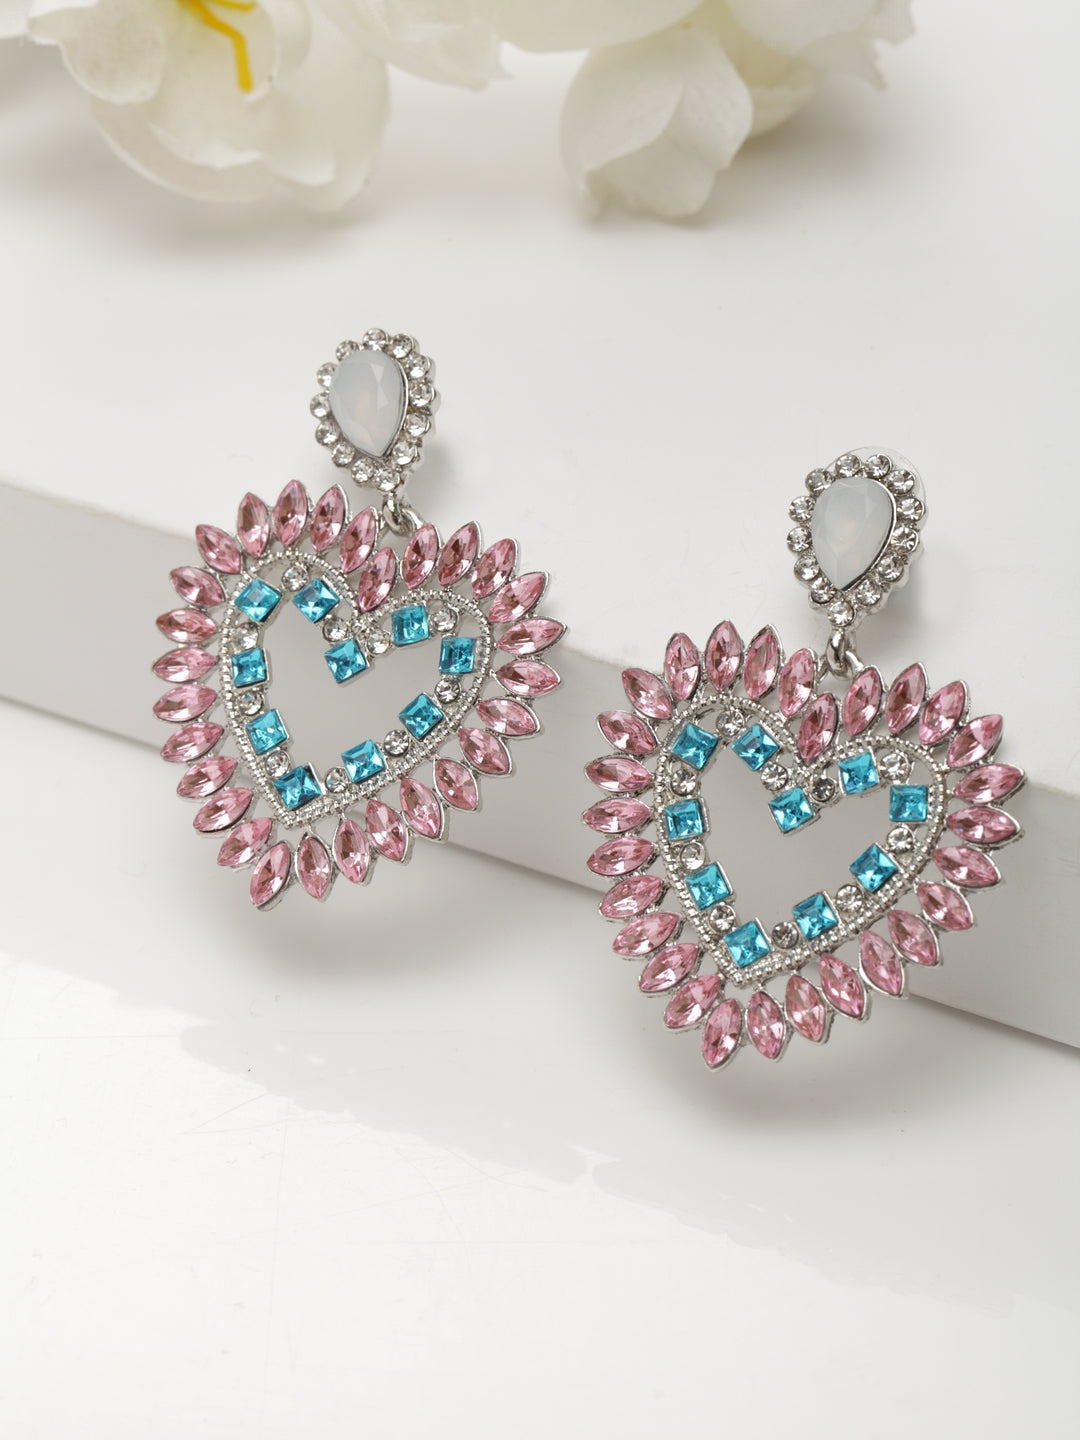 Avant-Garde Paris Statement Heart Earrings